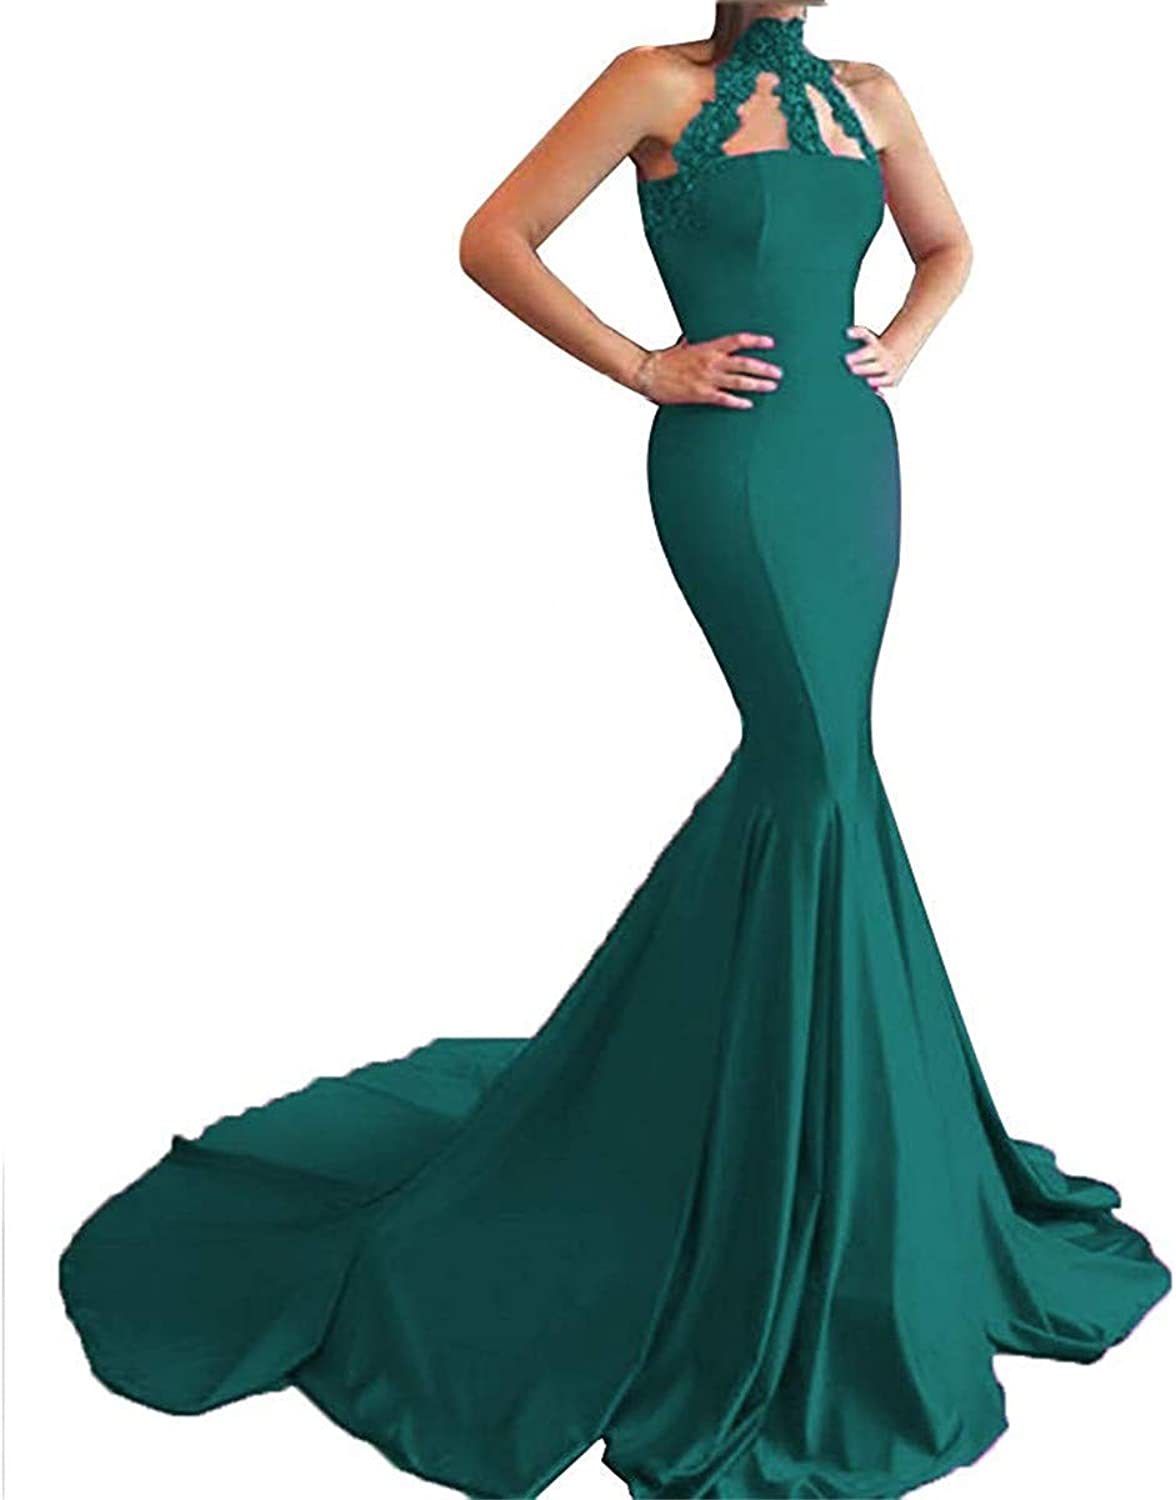 Sulidi Womens High Neck Applique Formal Dress Mermaid Prom Dress 2019 Evening Gowns with Train C235